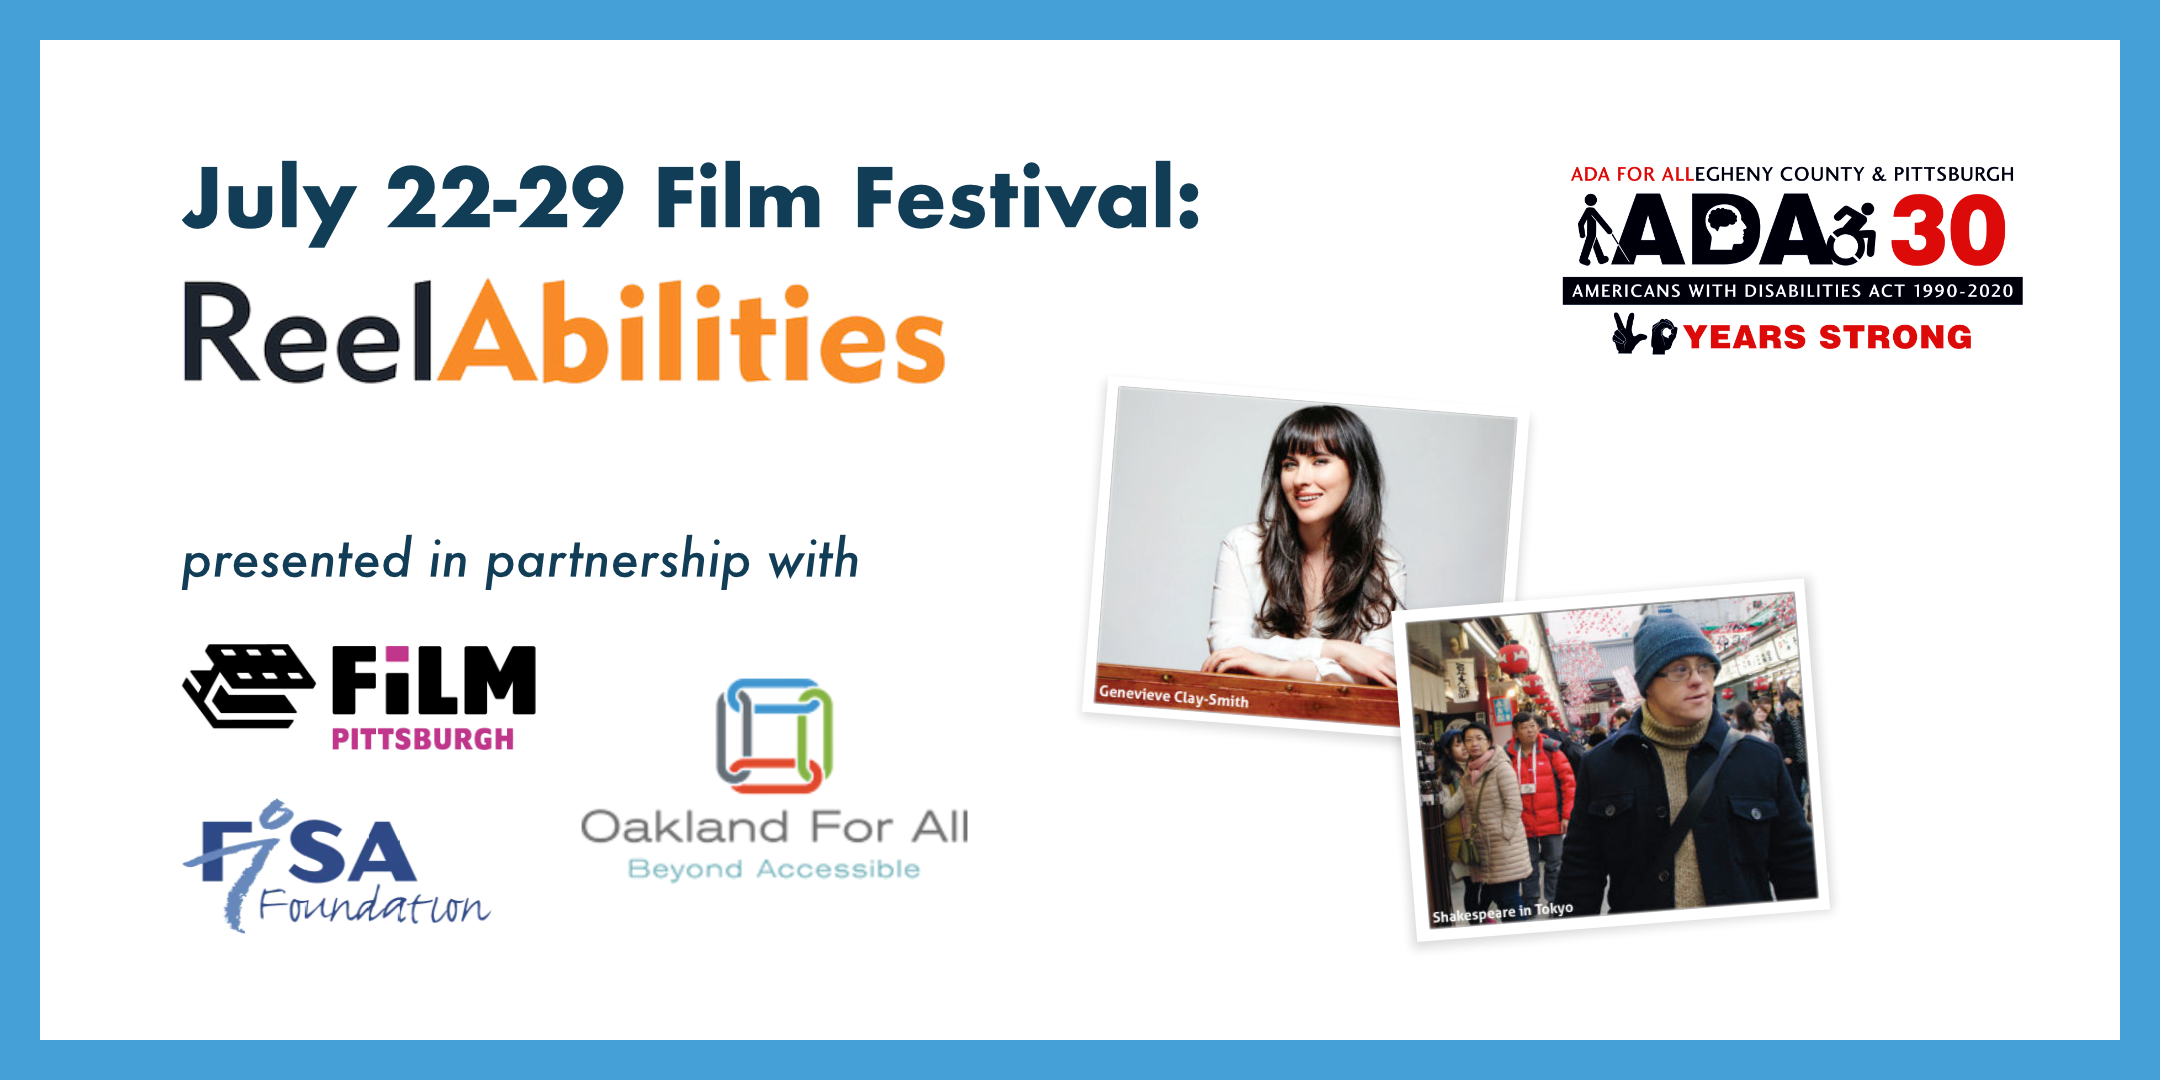 July 22-29 Film Festival: ReelAbilities